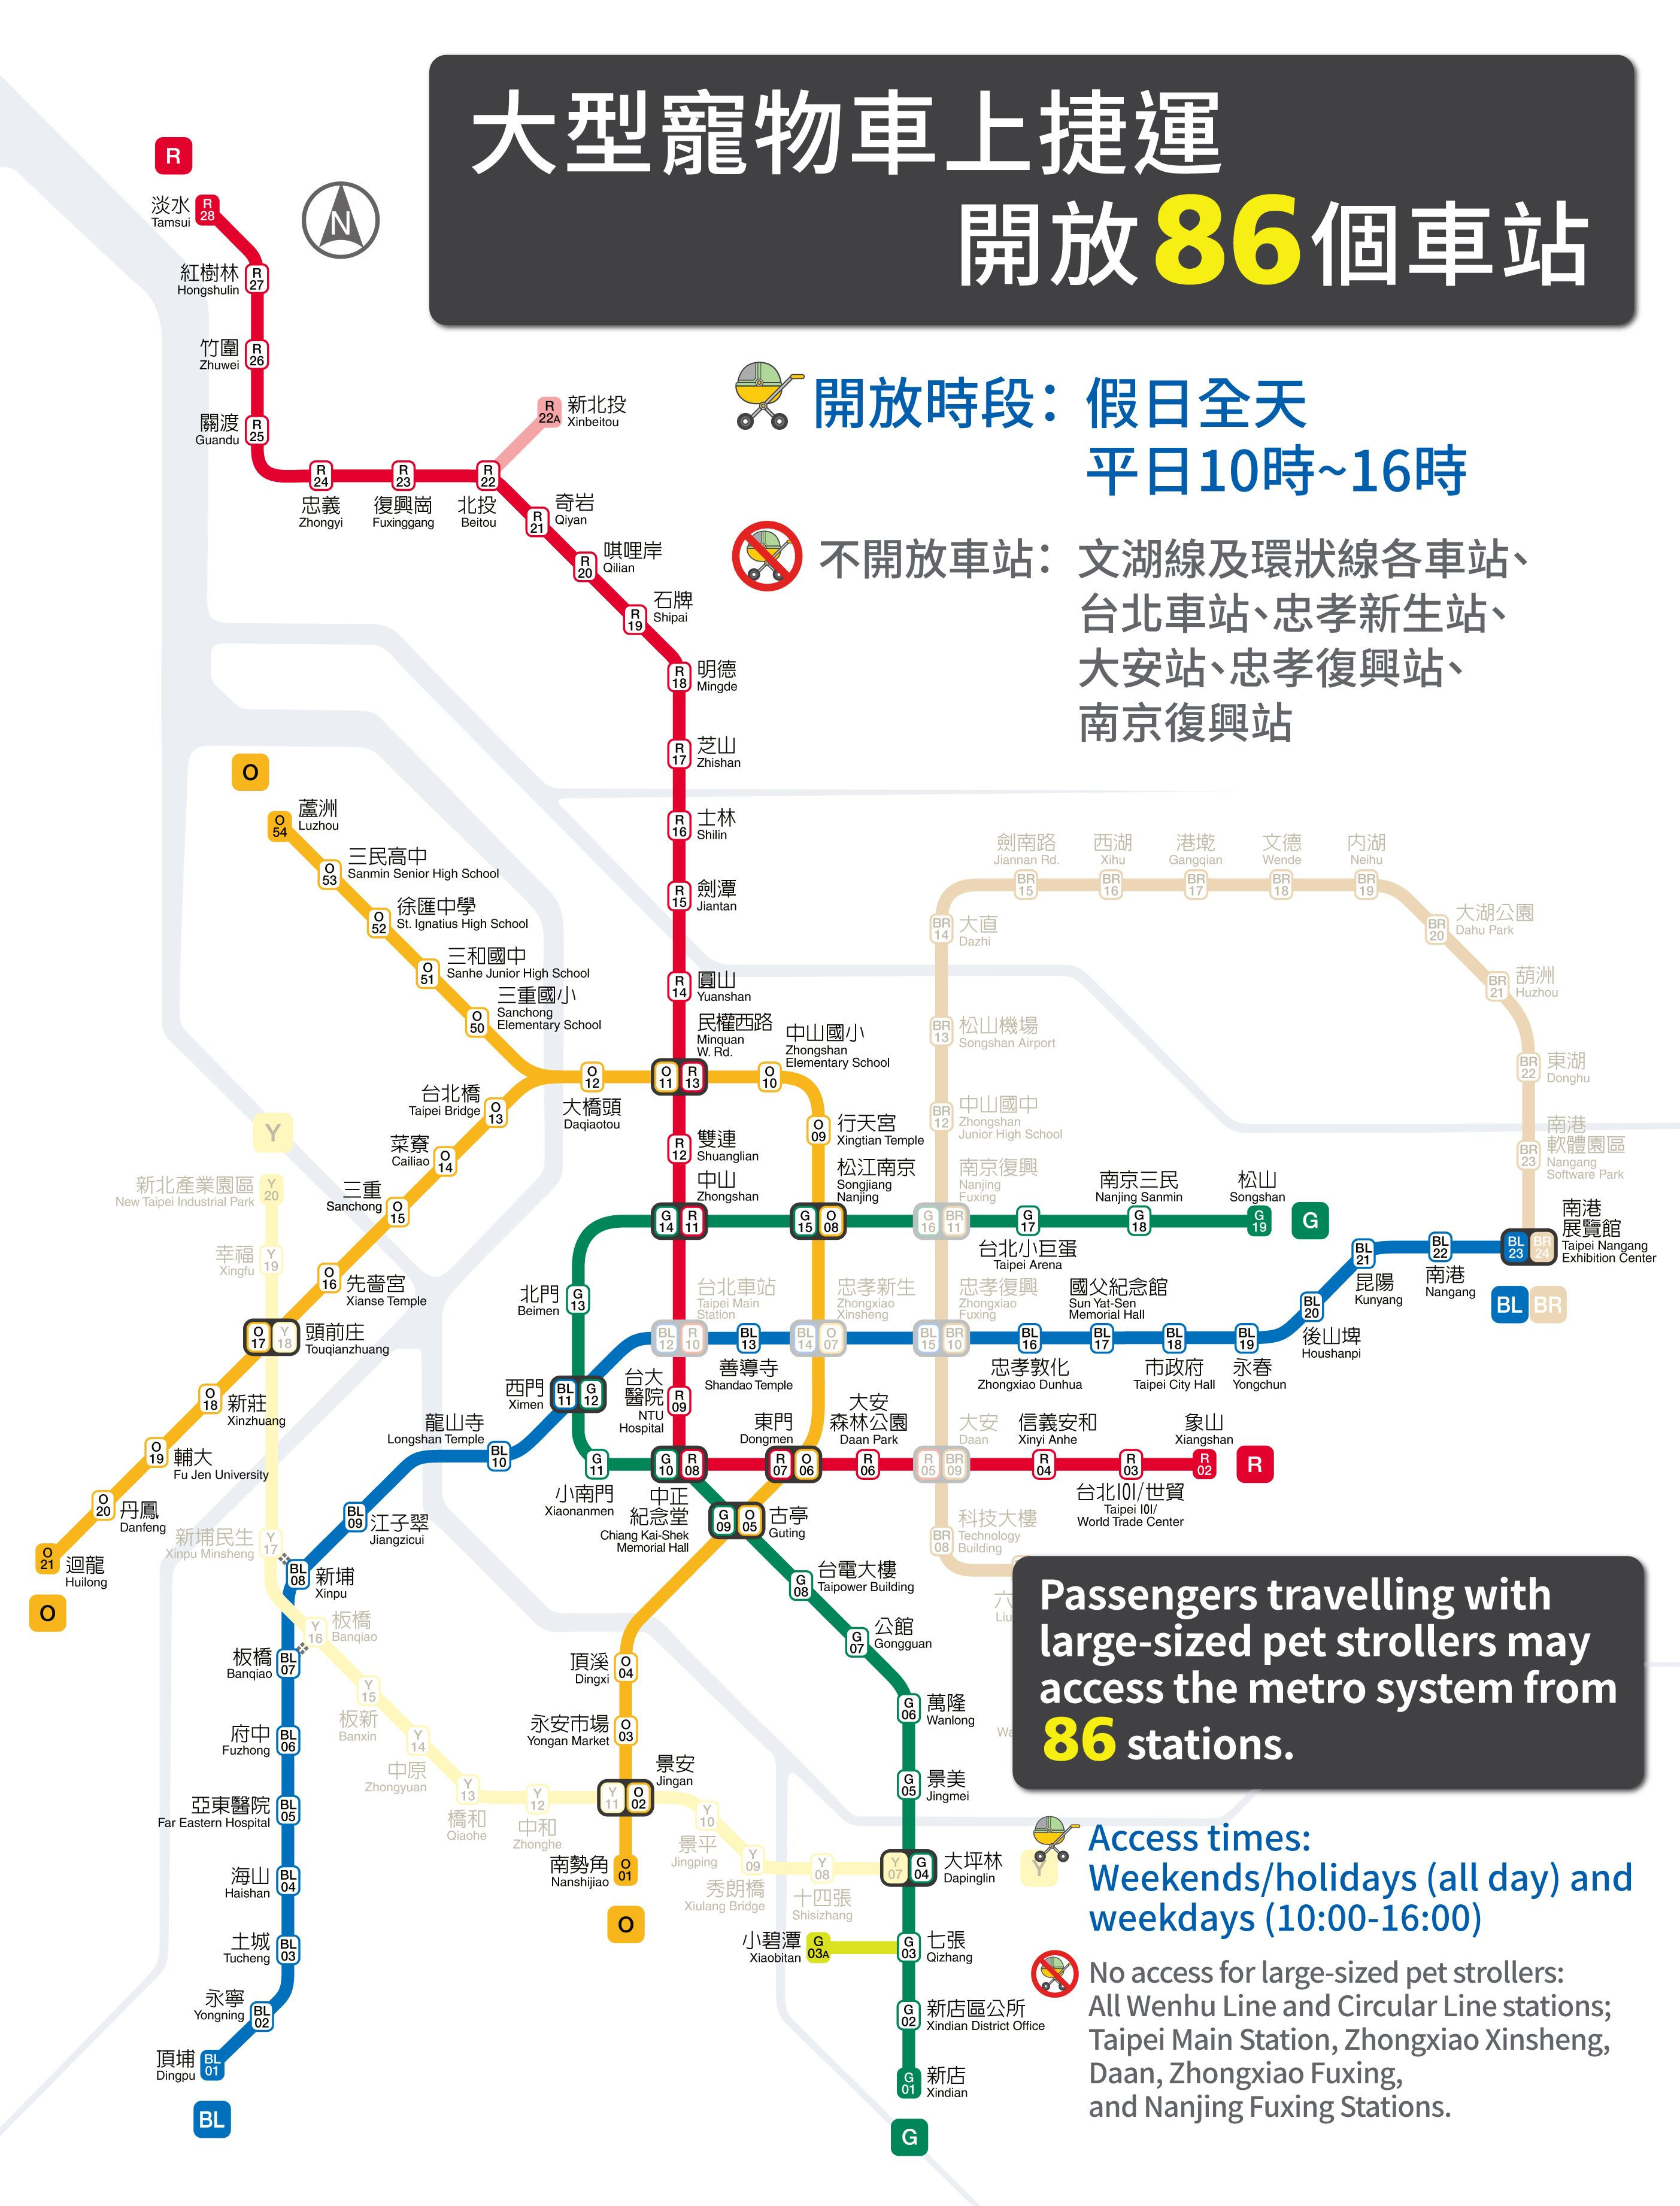 Passengers travelling with large-sized pet strollers may access the metro system from 86 stations.